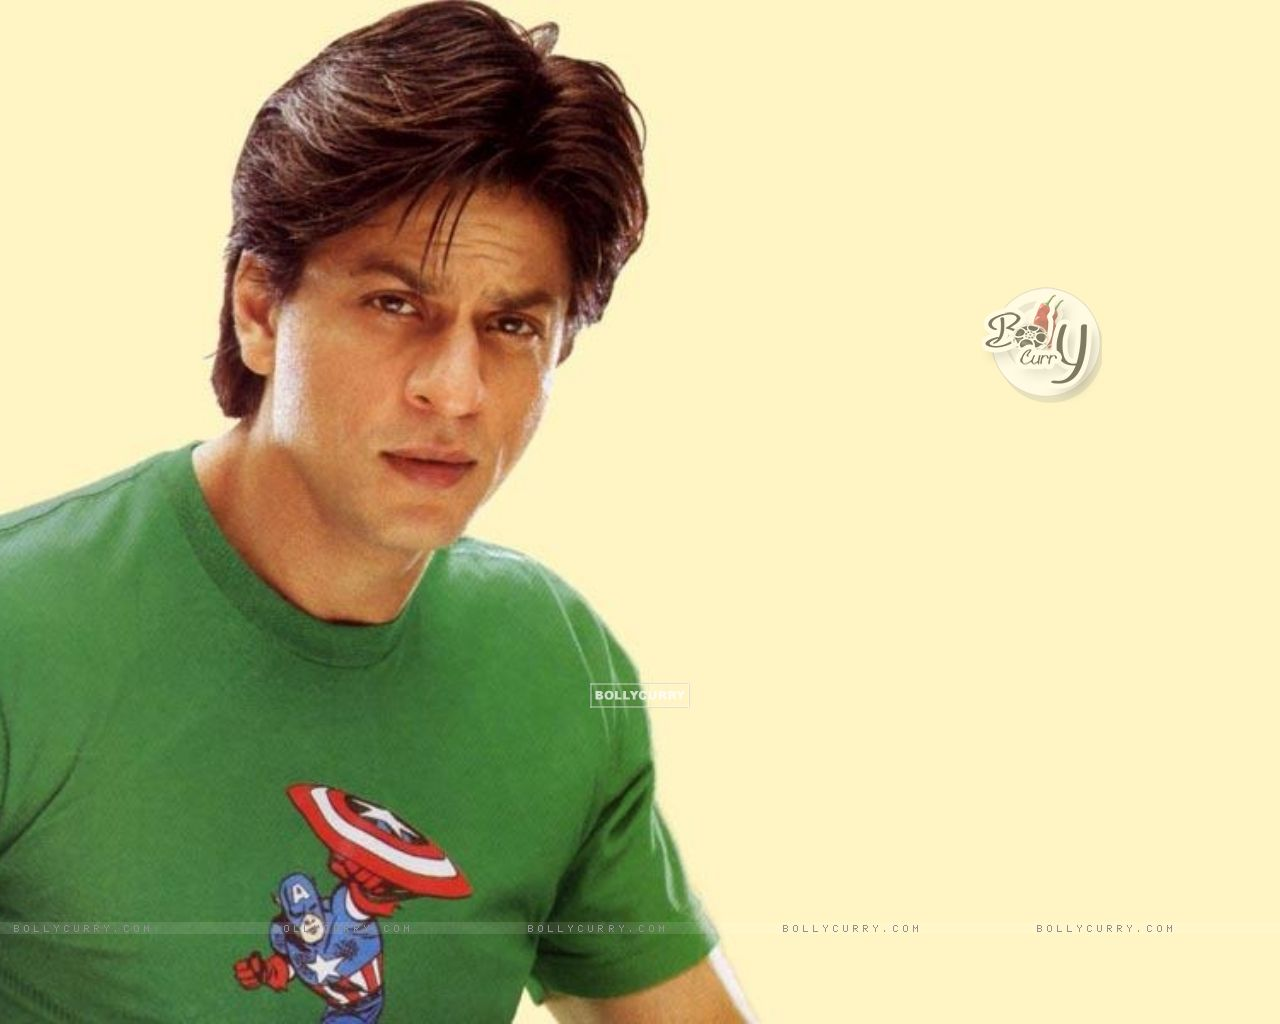 Shah Rukh Khan - Wallpaper Colection